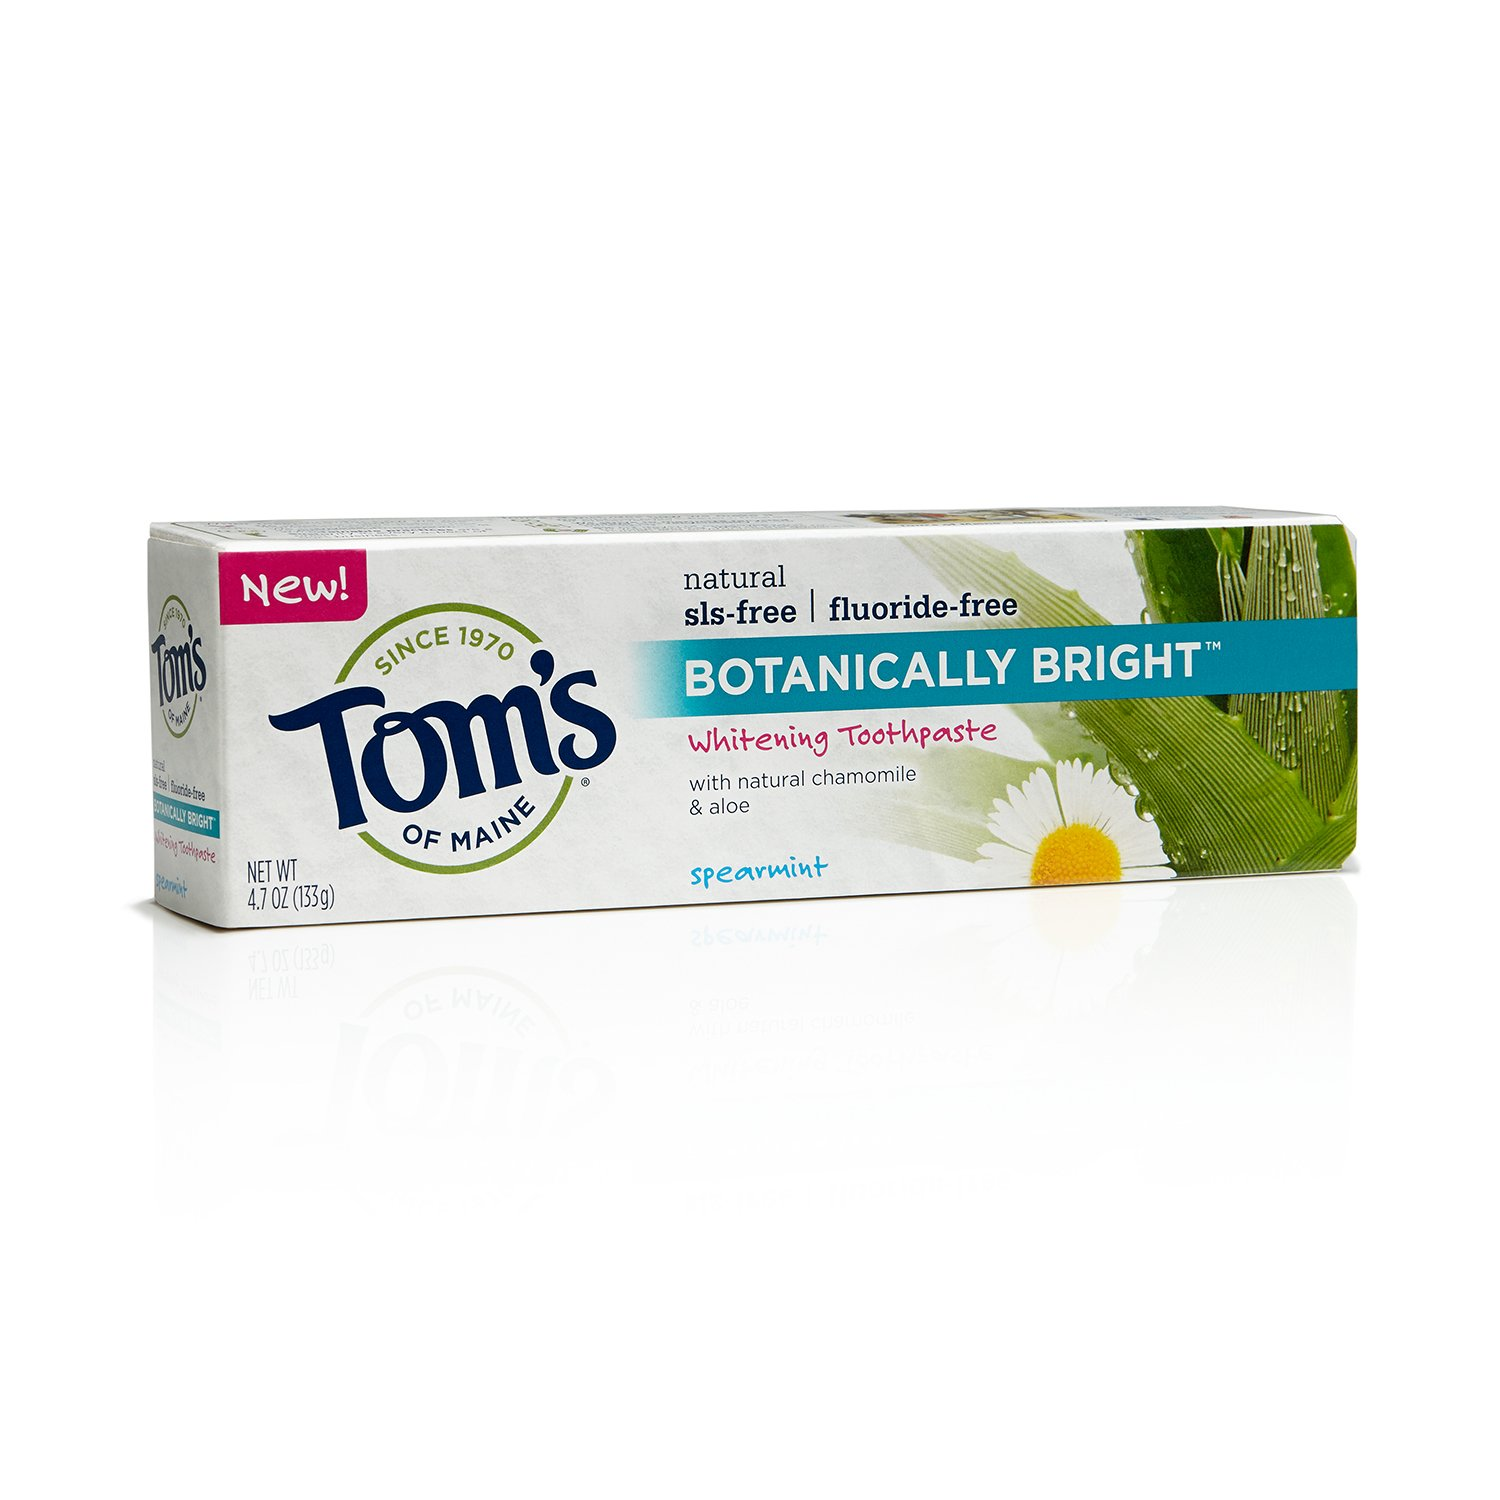 Good toothpaste to use with EC